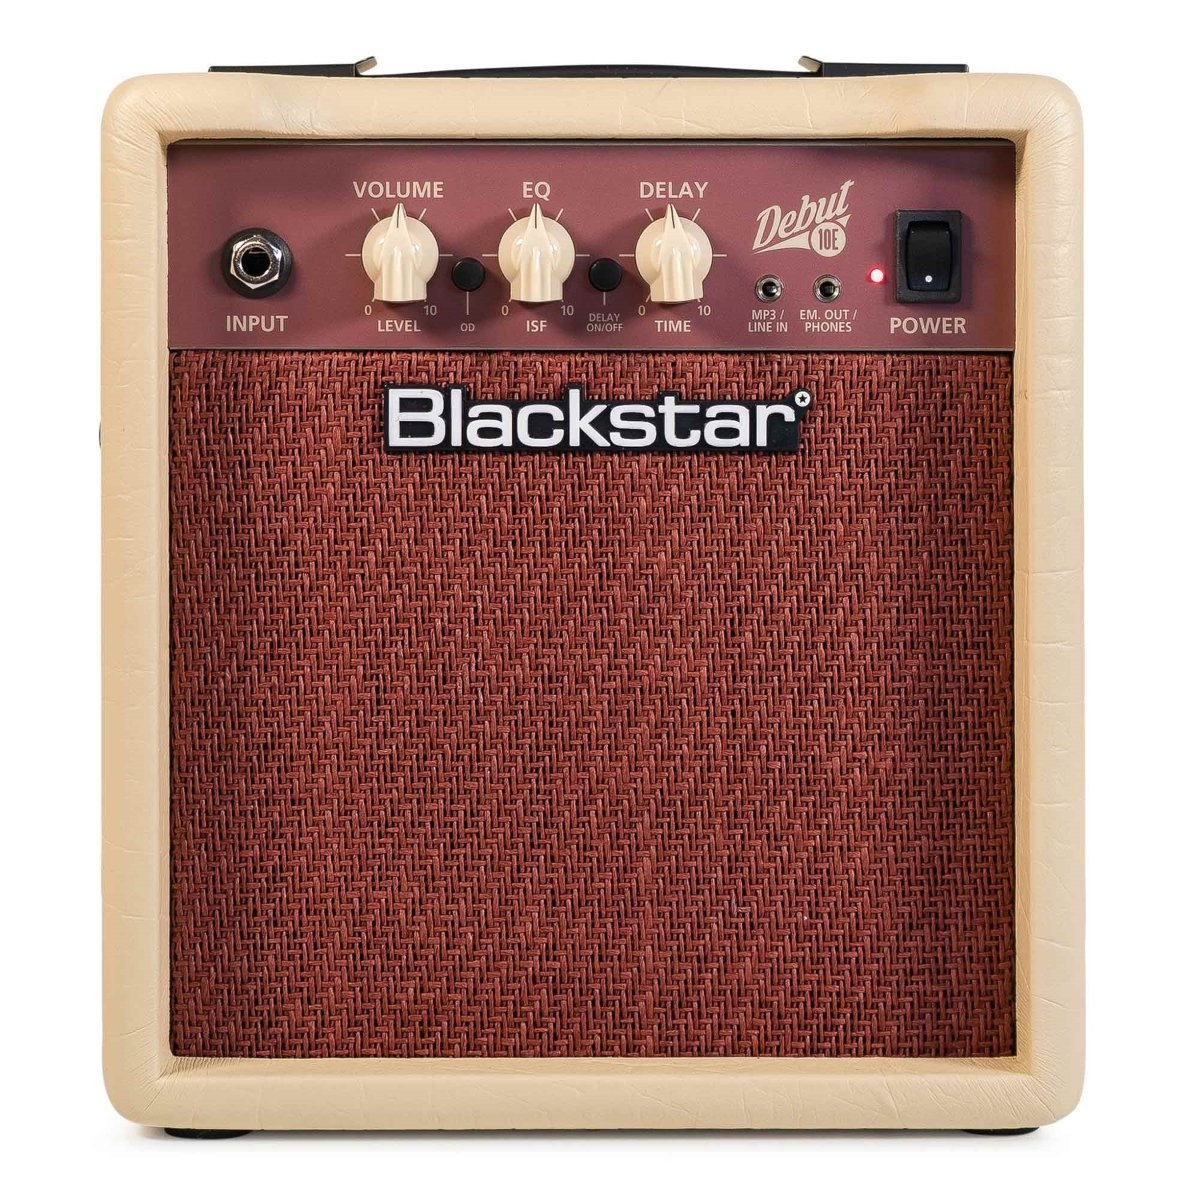 Blackstar Debut 10 E Guitar Amplifier